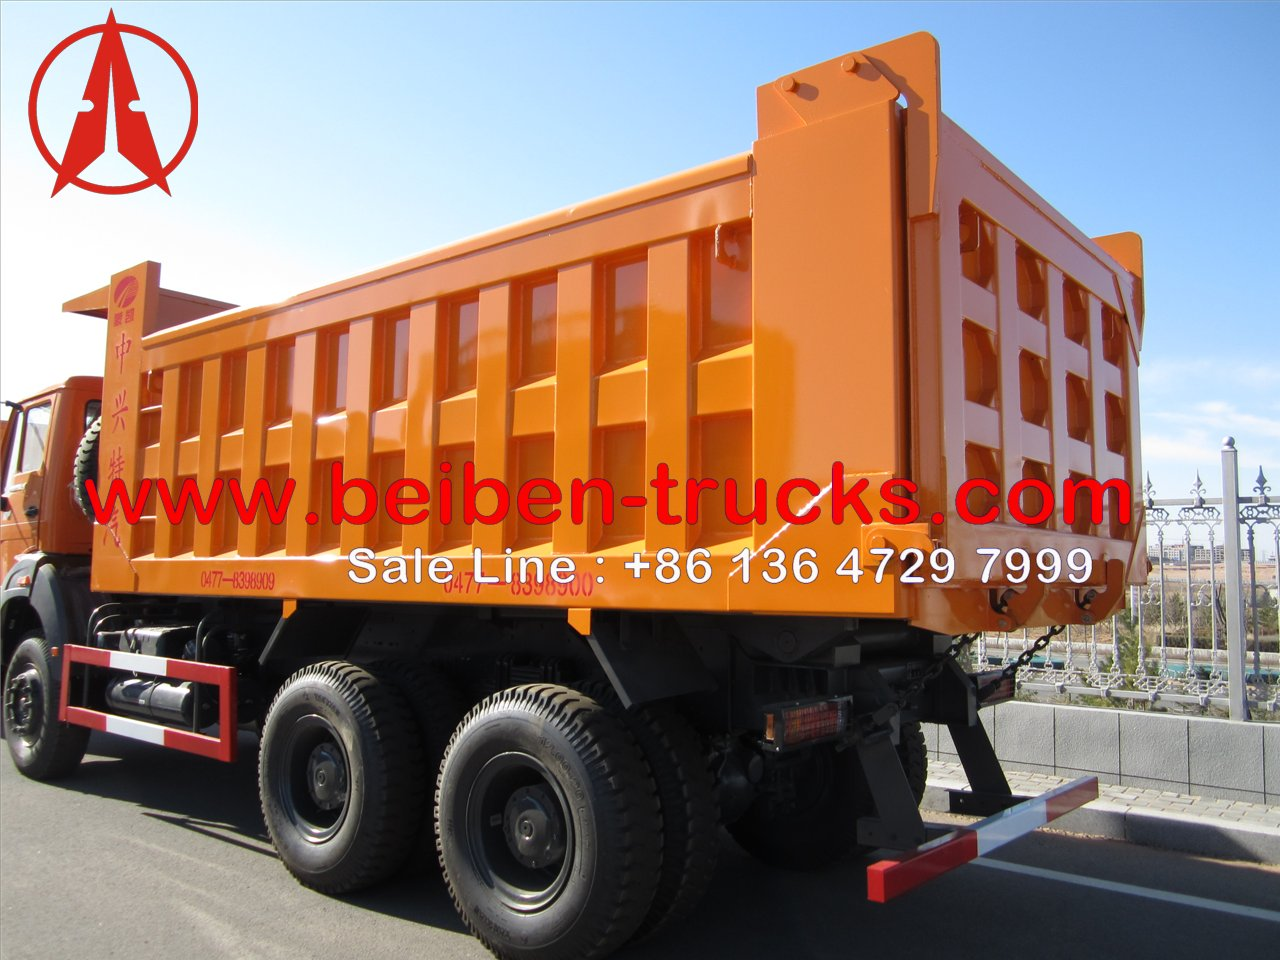 congo beiben dump truck supplier in china